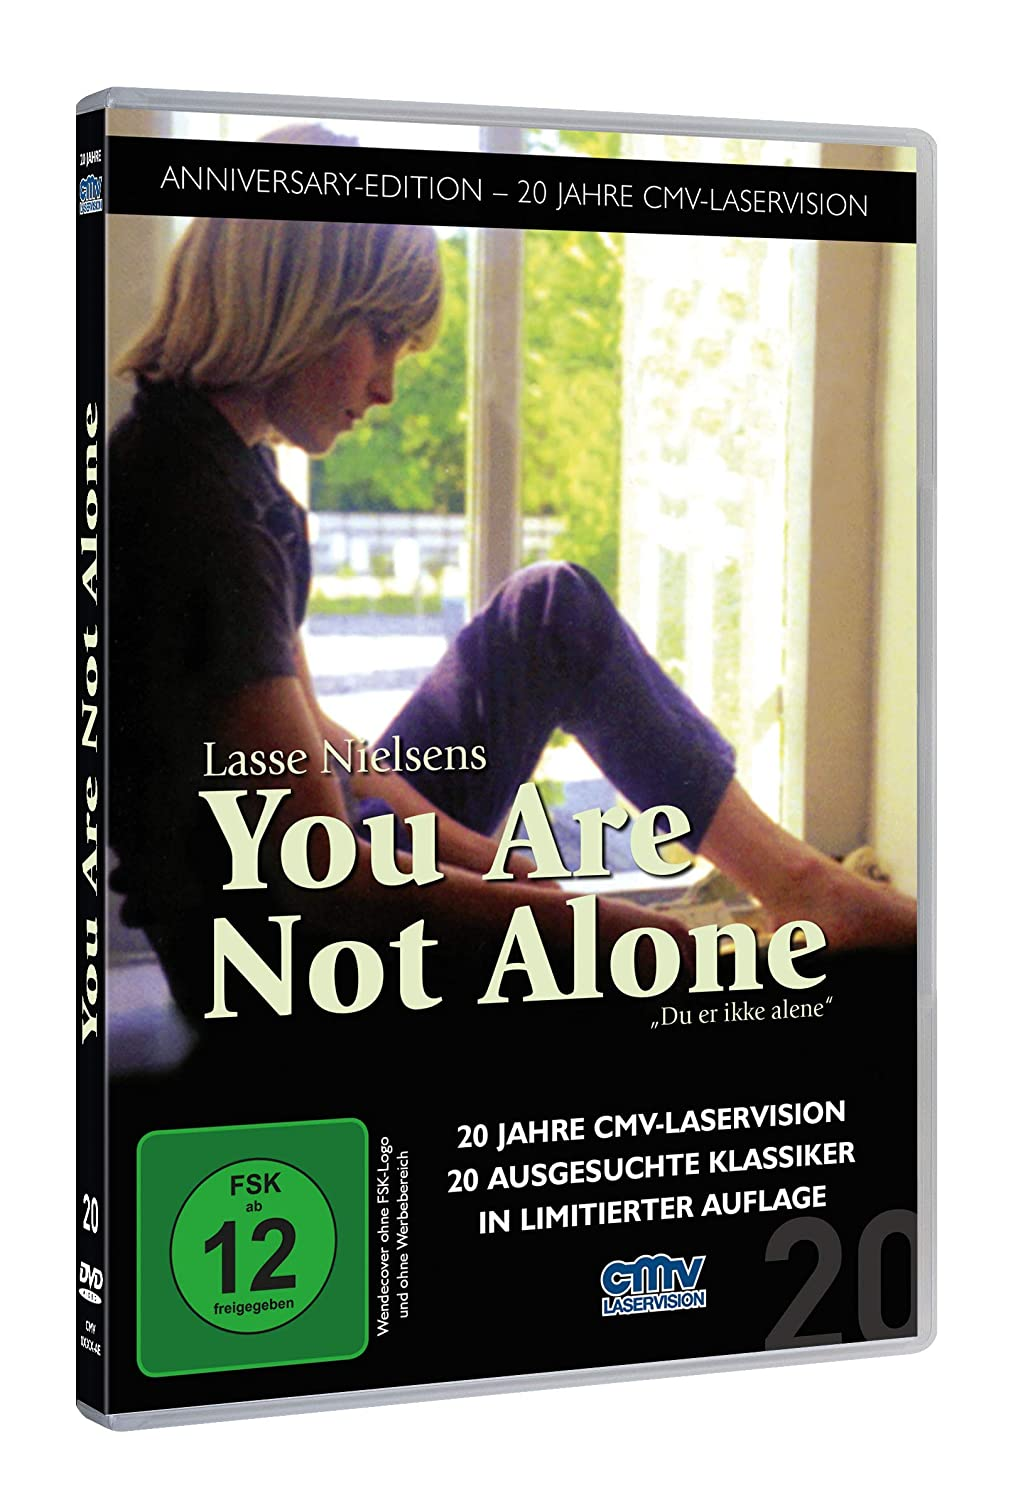 You Are Not Alone cmv Anniversary Edition #20 Alemania DVD: Amazon.es:  Anders Agensø, Peter Bjerg, Ove Sprogøe, Elin Reimer, Jan Jørgensen, Jørn  Faurschou, ...